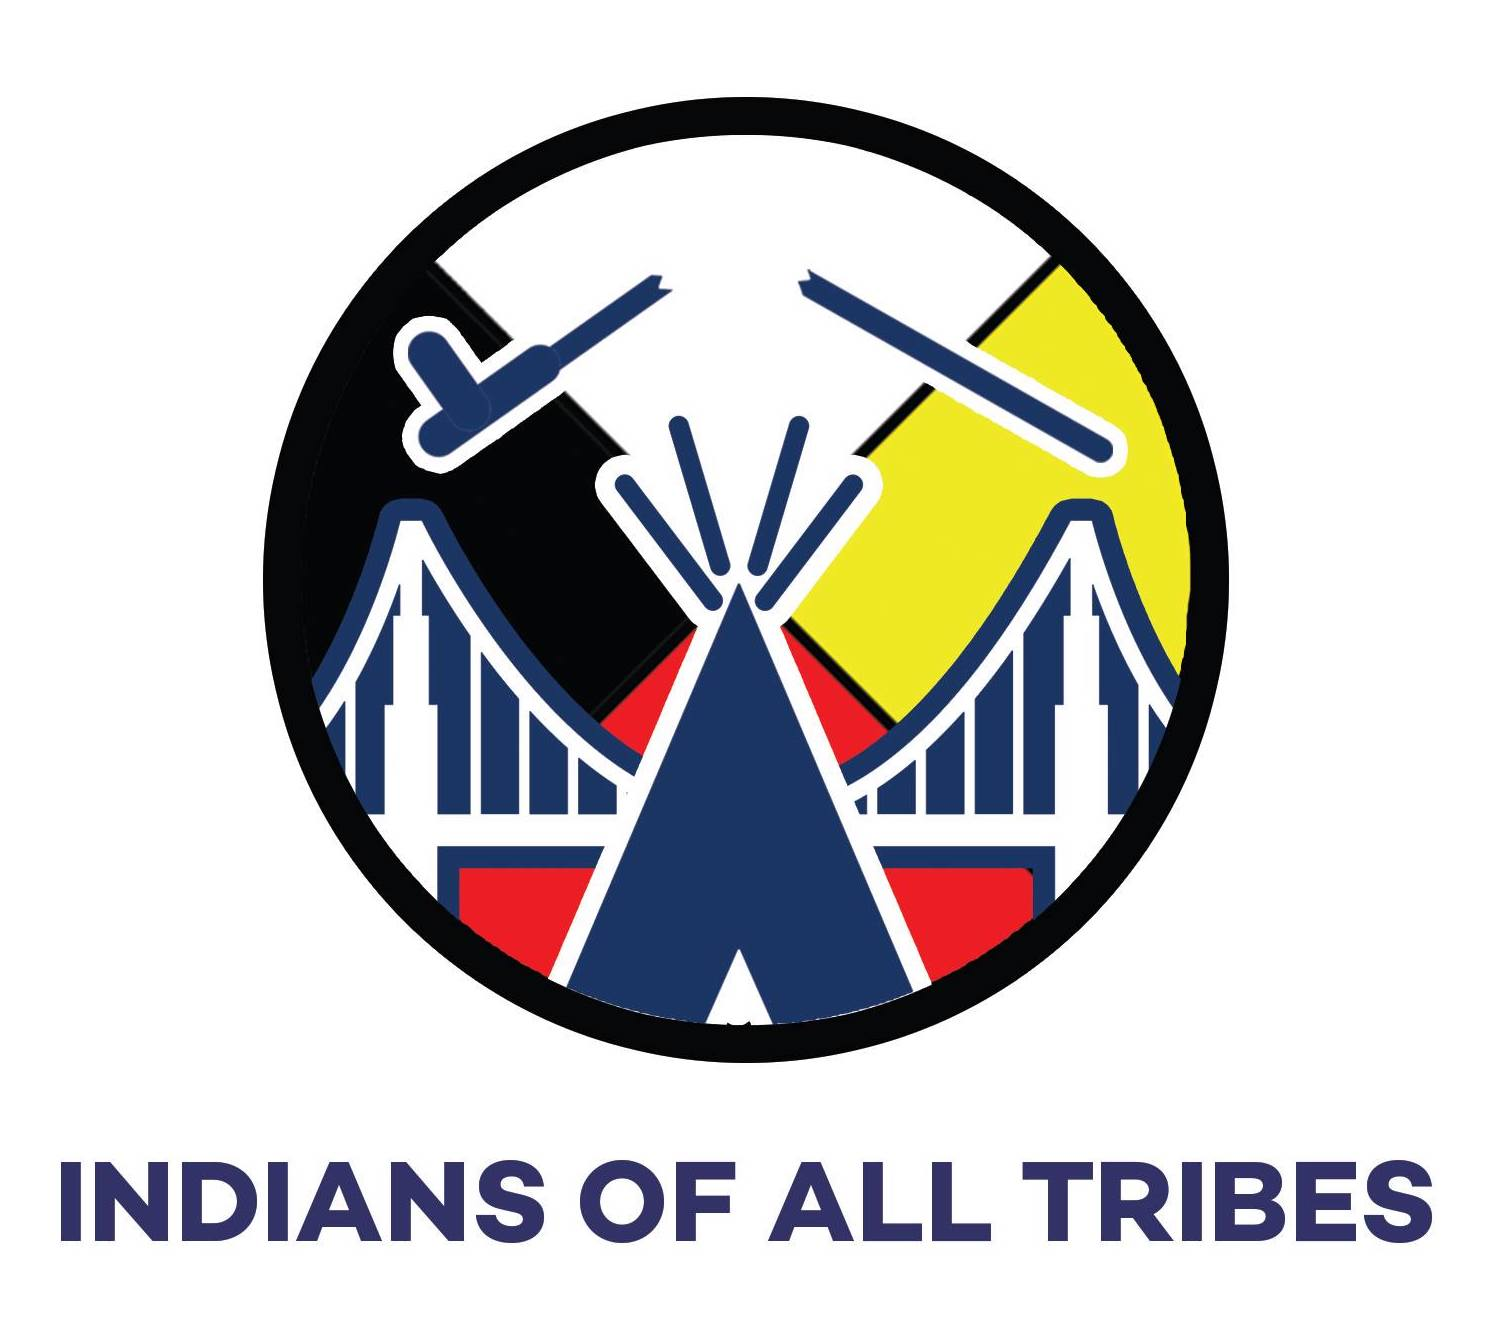 Indians of All Tribes Logo